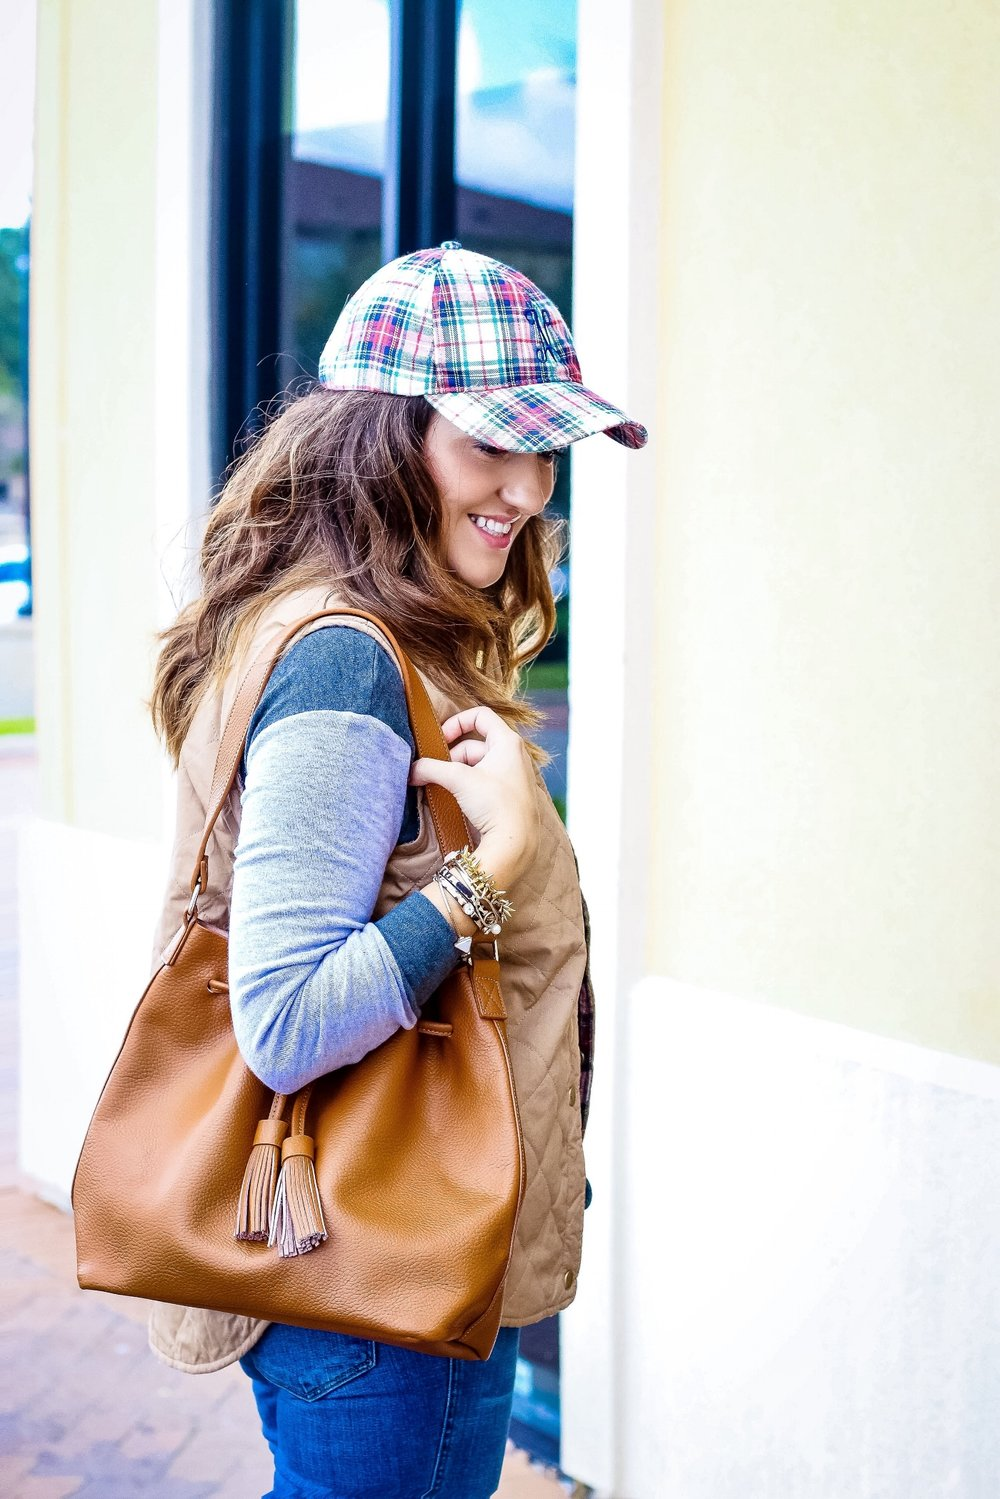 This tote has become my latest on the go favorite bag. Love the size, color and style! Oh and let's talk about the adorable baseball hat! These are the days I want to look put together, yet still be comfortable! This mama of three is always on the go!